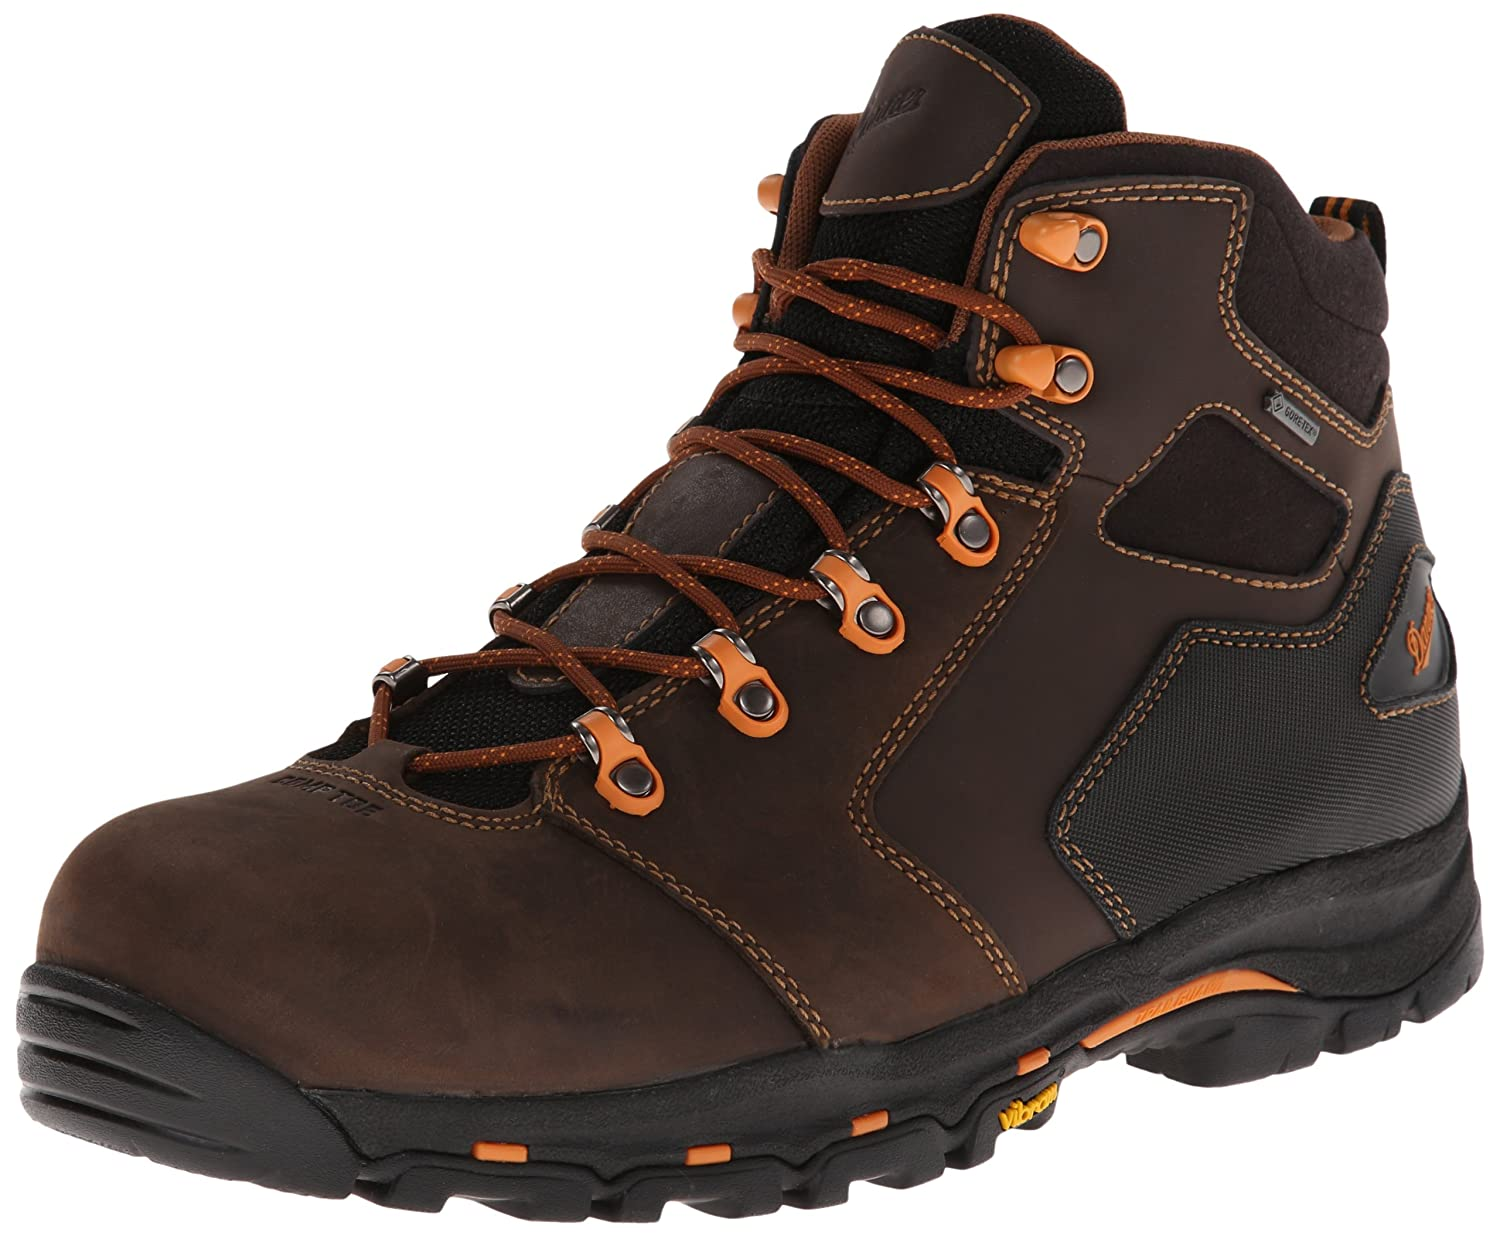 Amazon.com: Danner Men's Vicious 4.5 Inch Non Metallic Toe Work ...